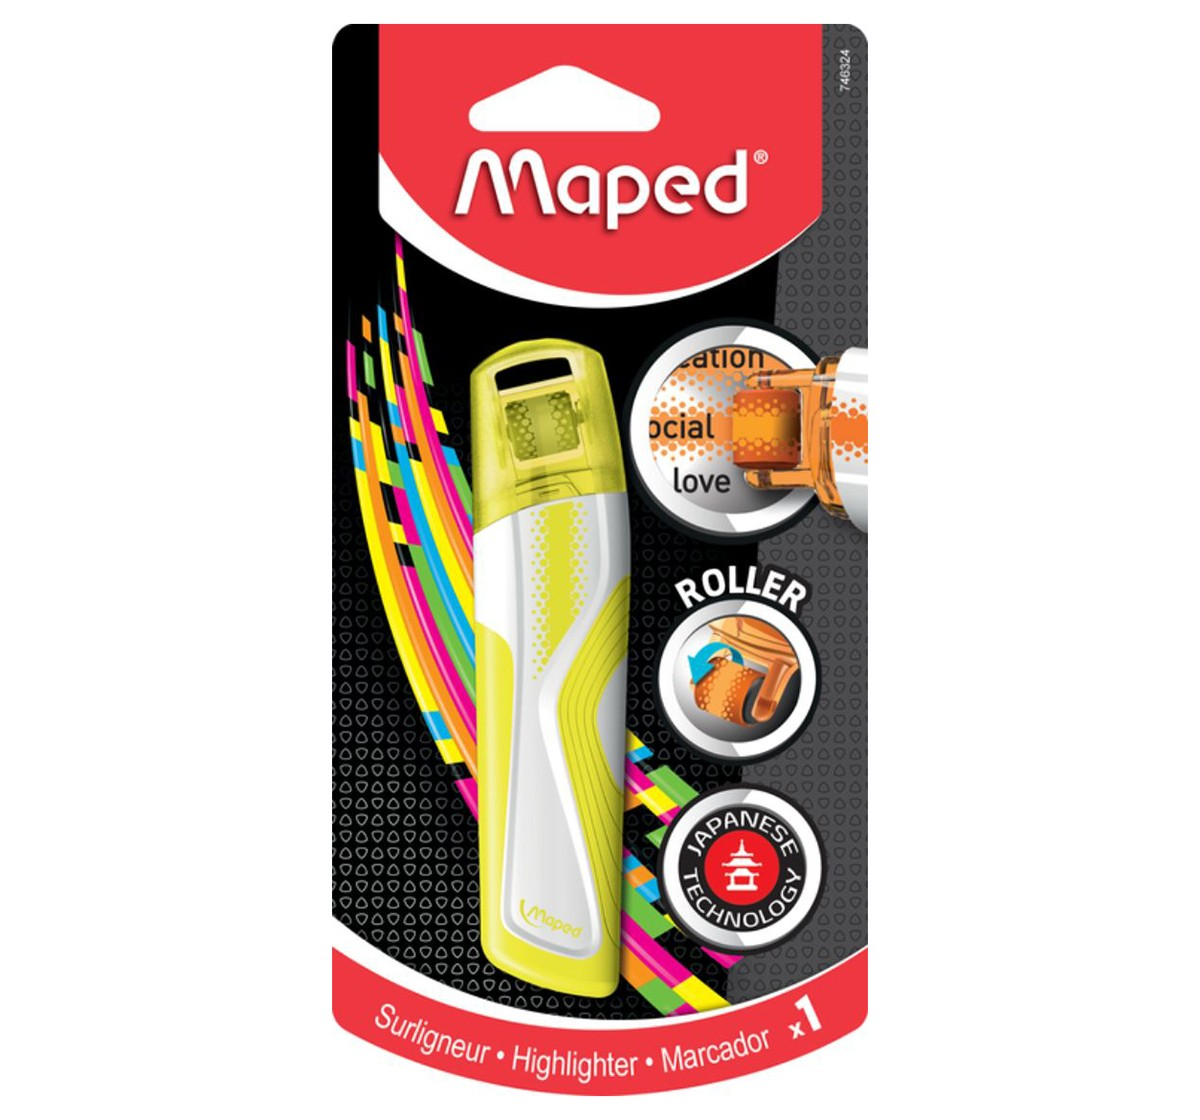 Maped 1 Highlighter Roller, Unisex 7Y+ (Yellow)